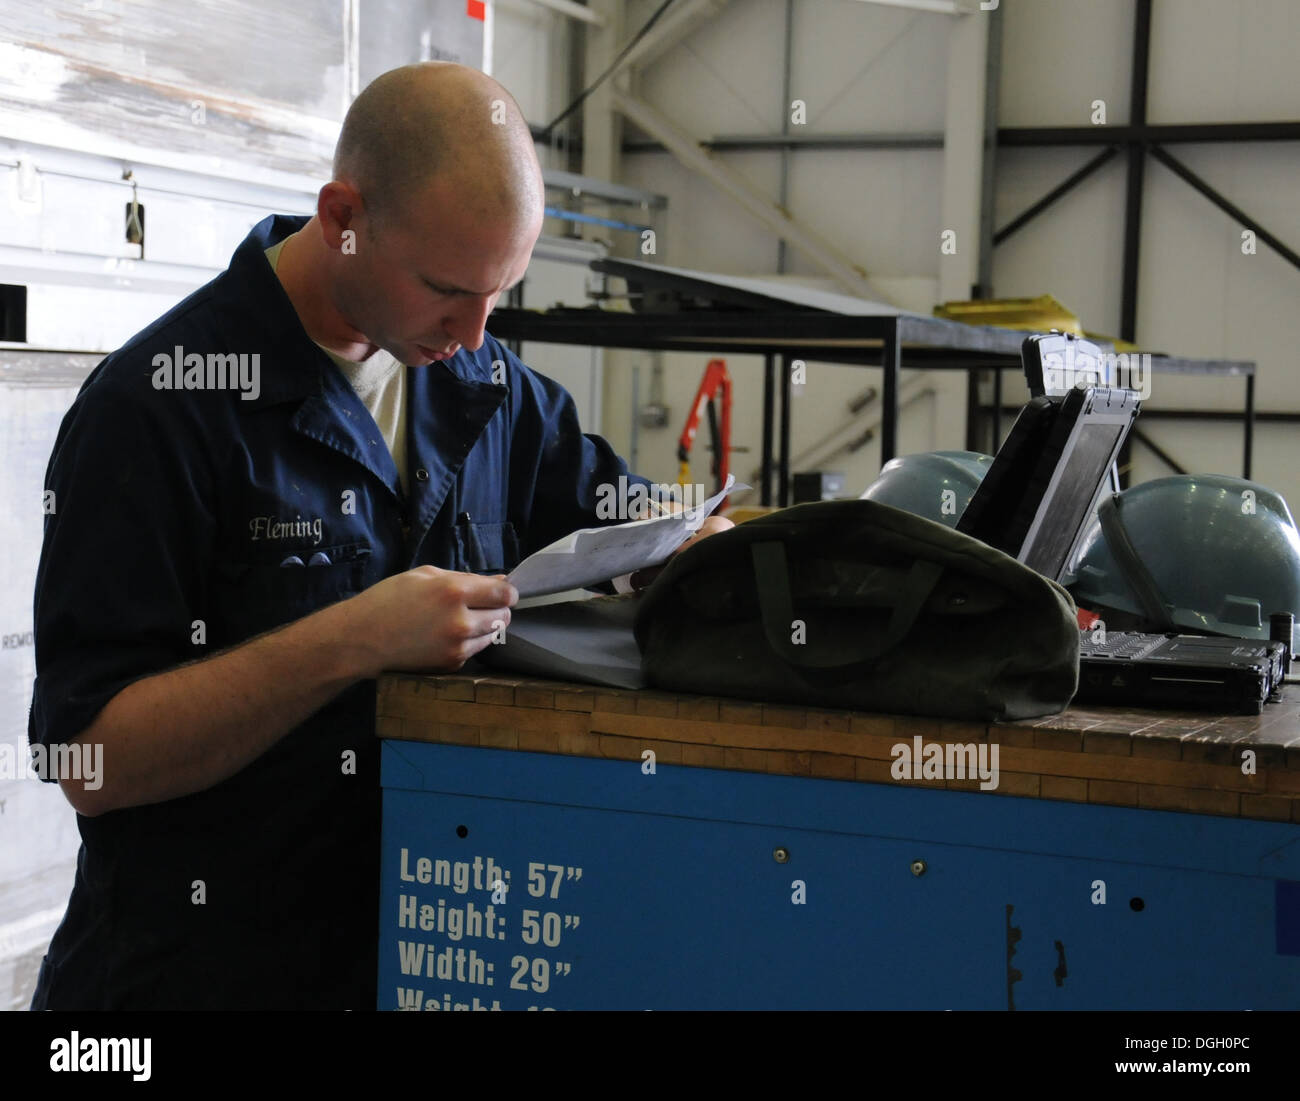 U.S. Air Force Staff Sgt. Jason Fleming, 100th Maintenance Squadron aircraft structural maintenance craftsman from Fort Oglethorpe, Ga., reviews a list of tasks for items requiring sheet metal repair Oct. 8, 2013, on RAF Mildenhall, England. The 100th MXS - Stock Image